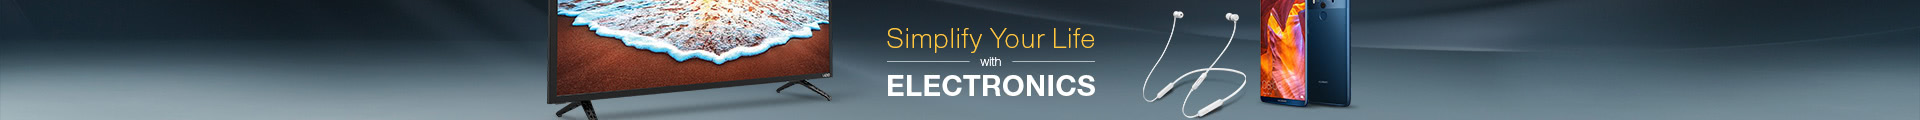 Simplify Your Life with Electronics